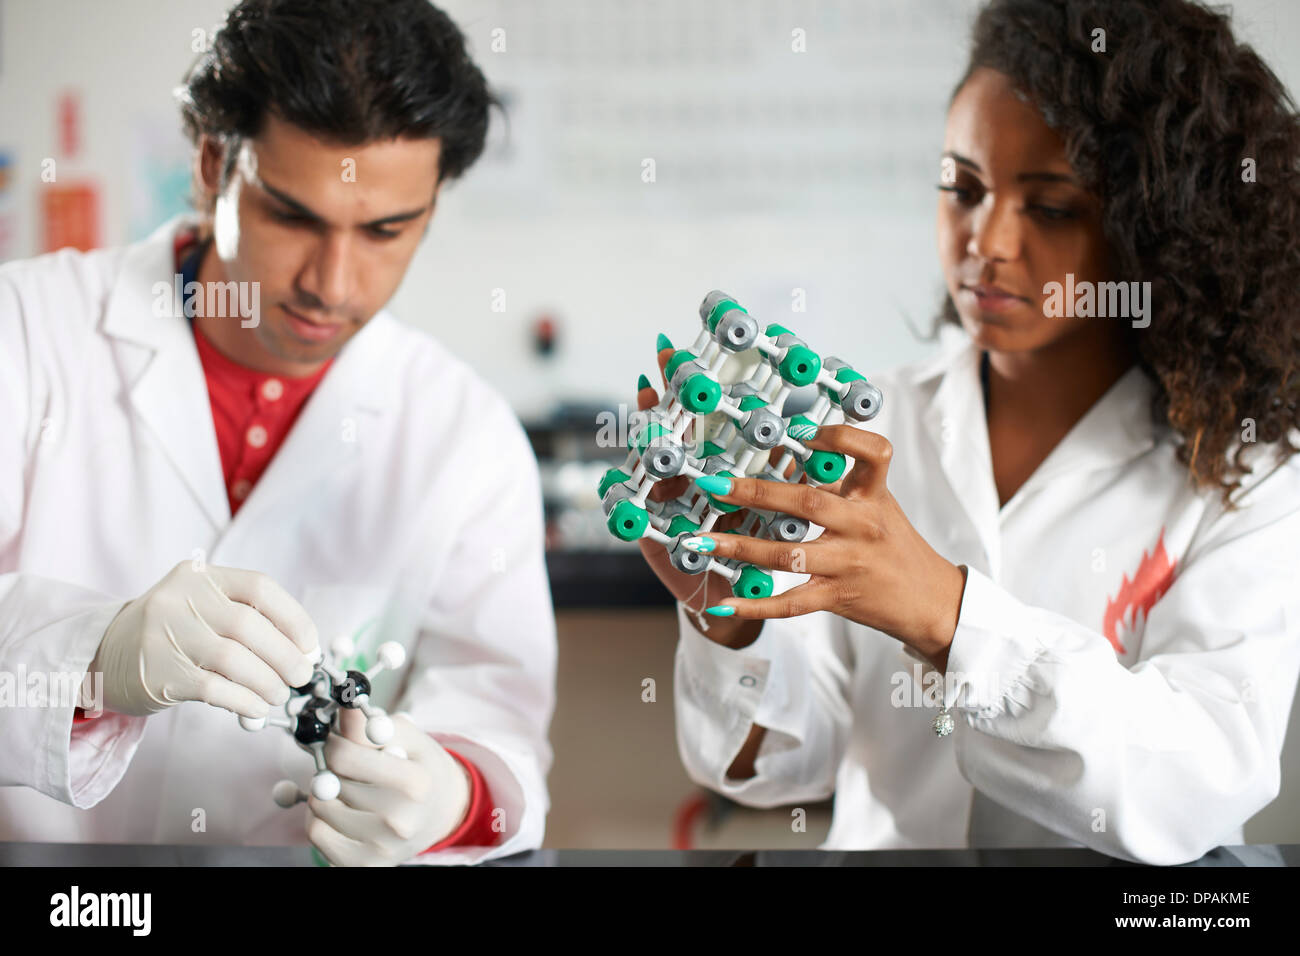 College students holding molecular models - Stock Image